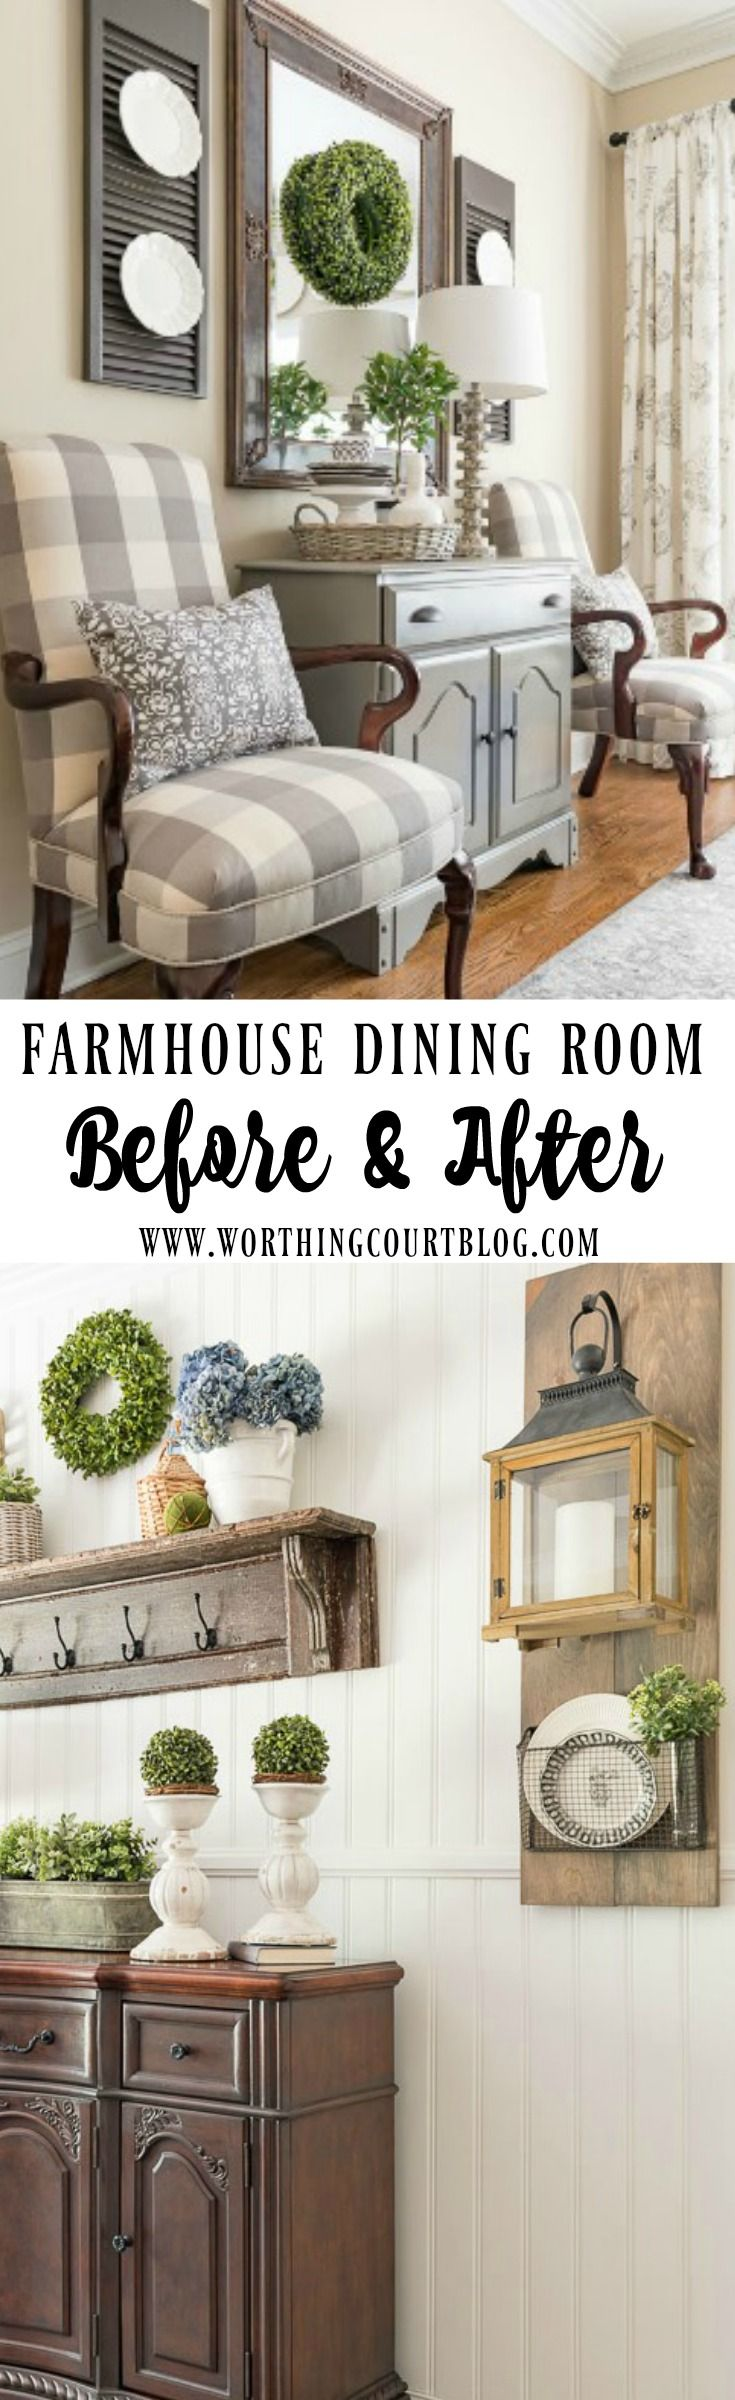 Modern farmhouse dining room makeover beautiful dining room makeover - Farmhouse Dining Room Makeover Reveal Before And After